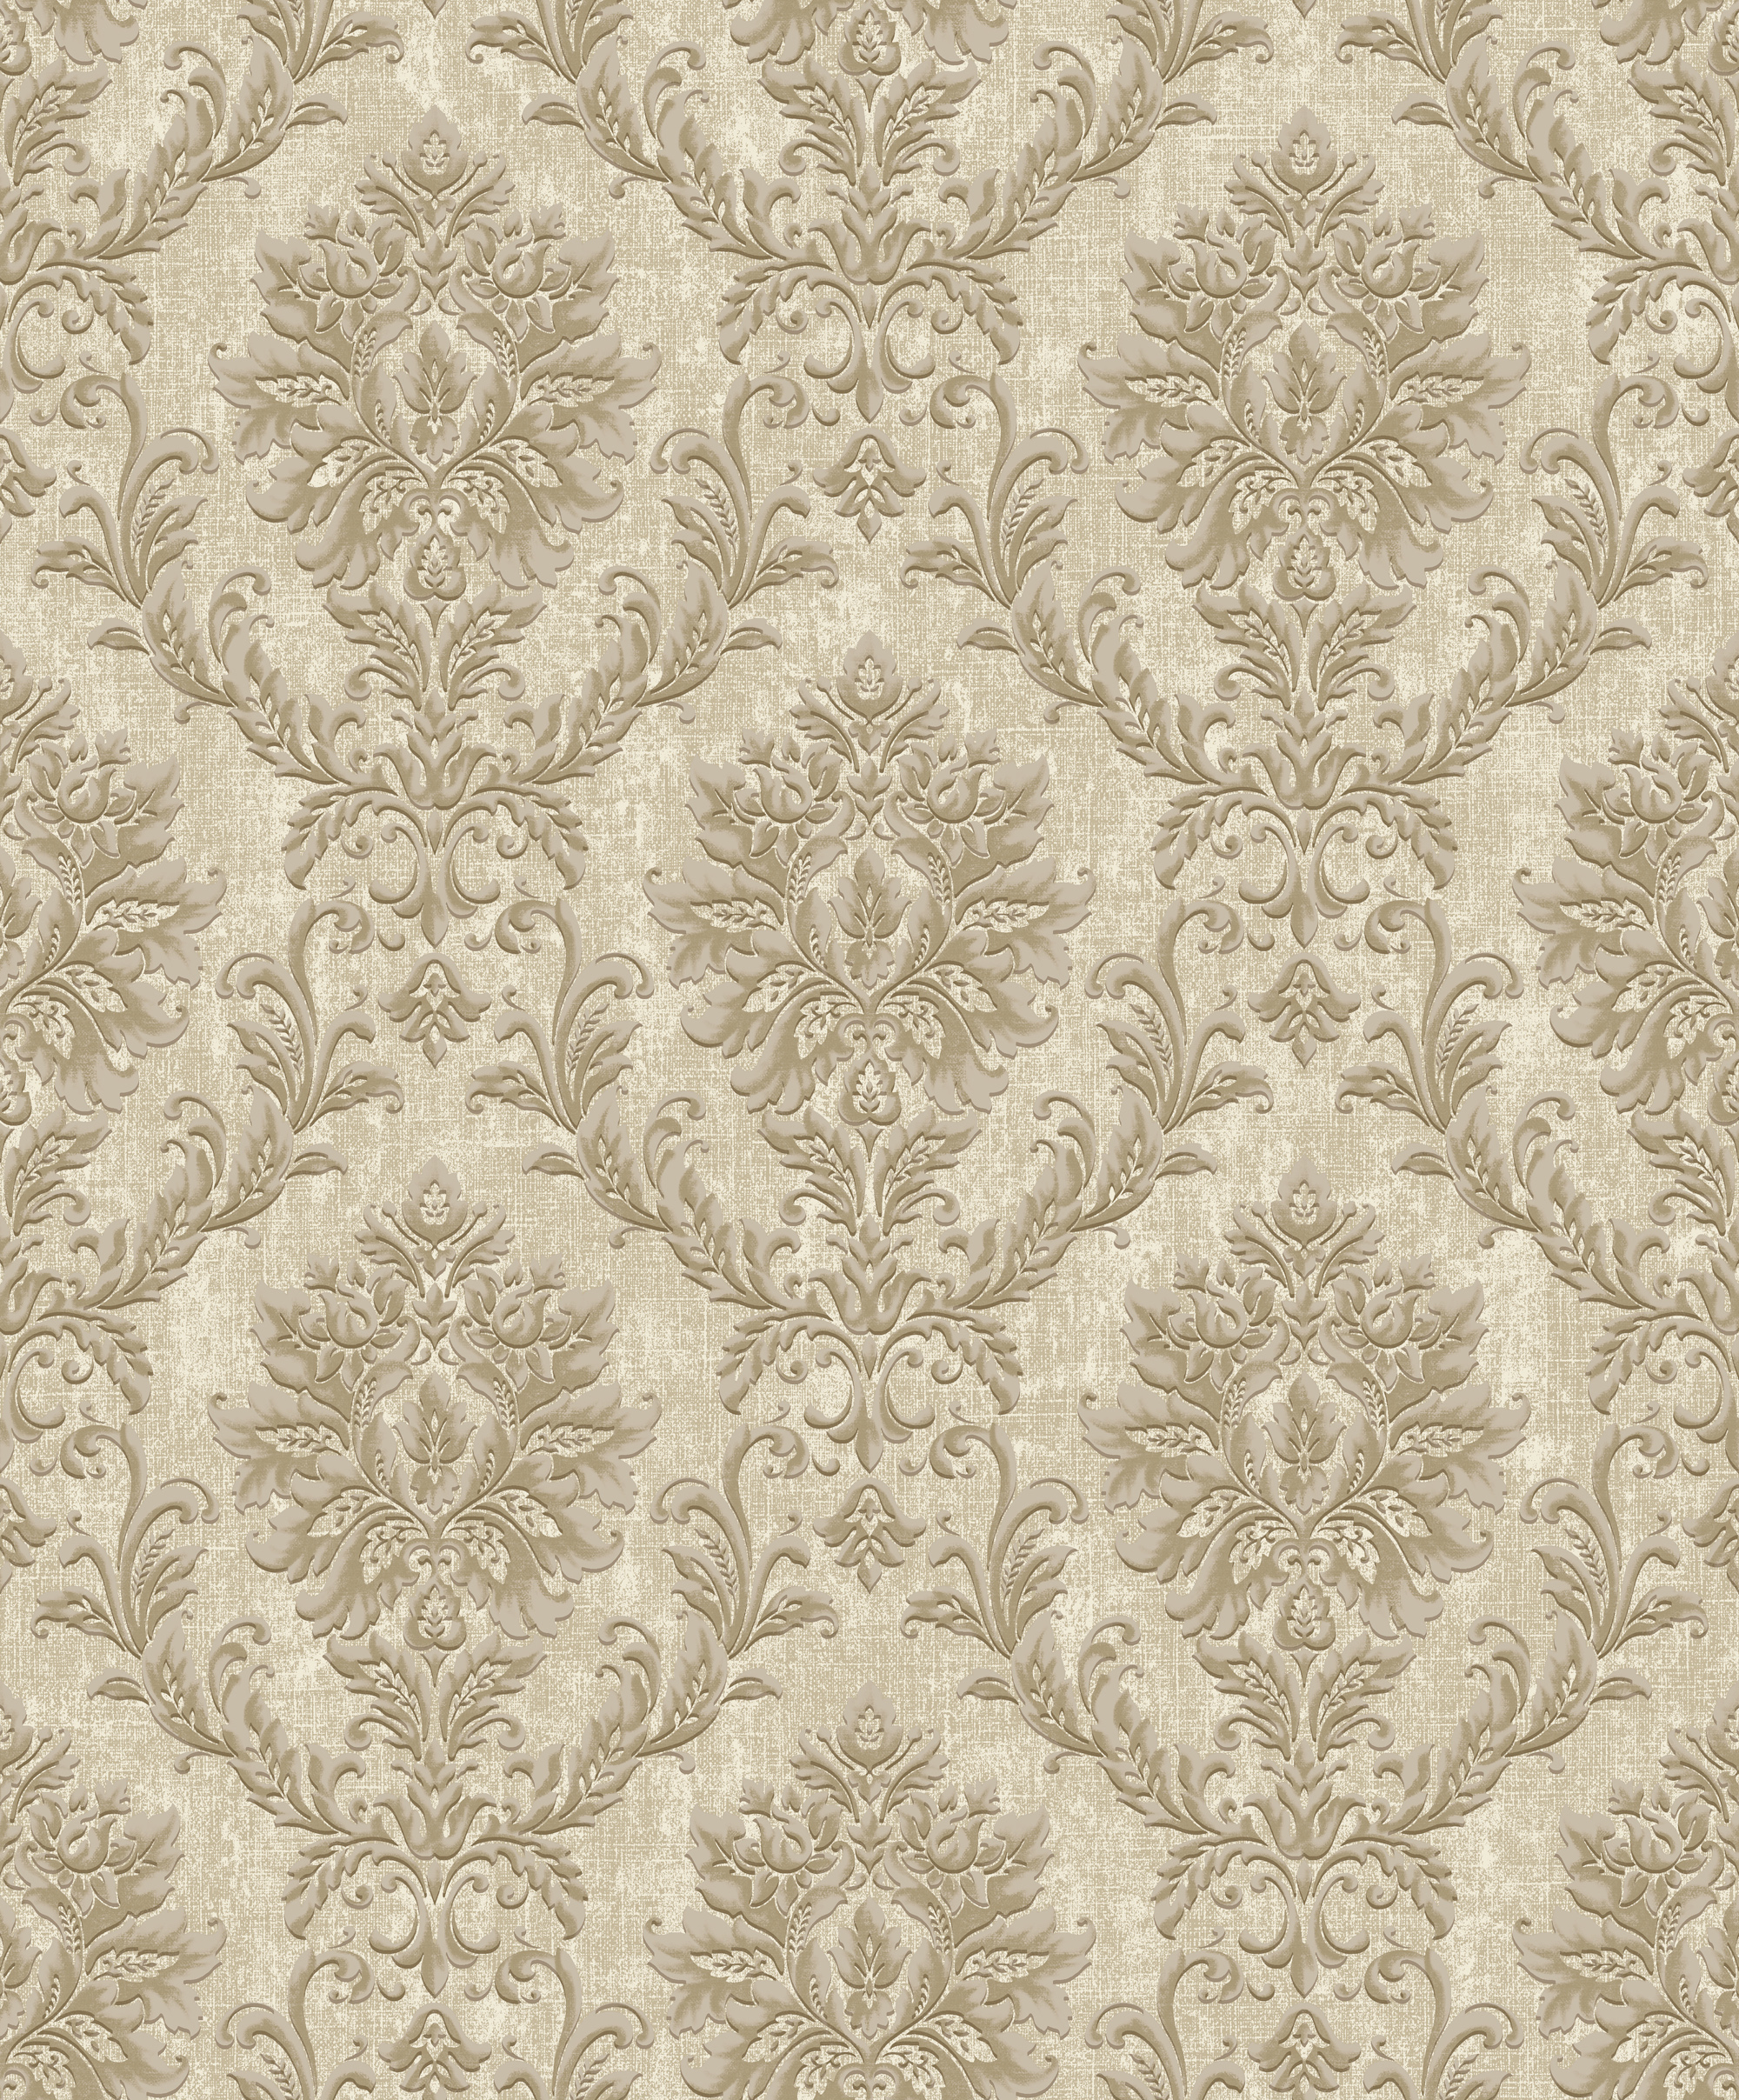 130801 Villa Borghese Small Damask Taupe